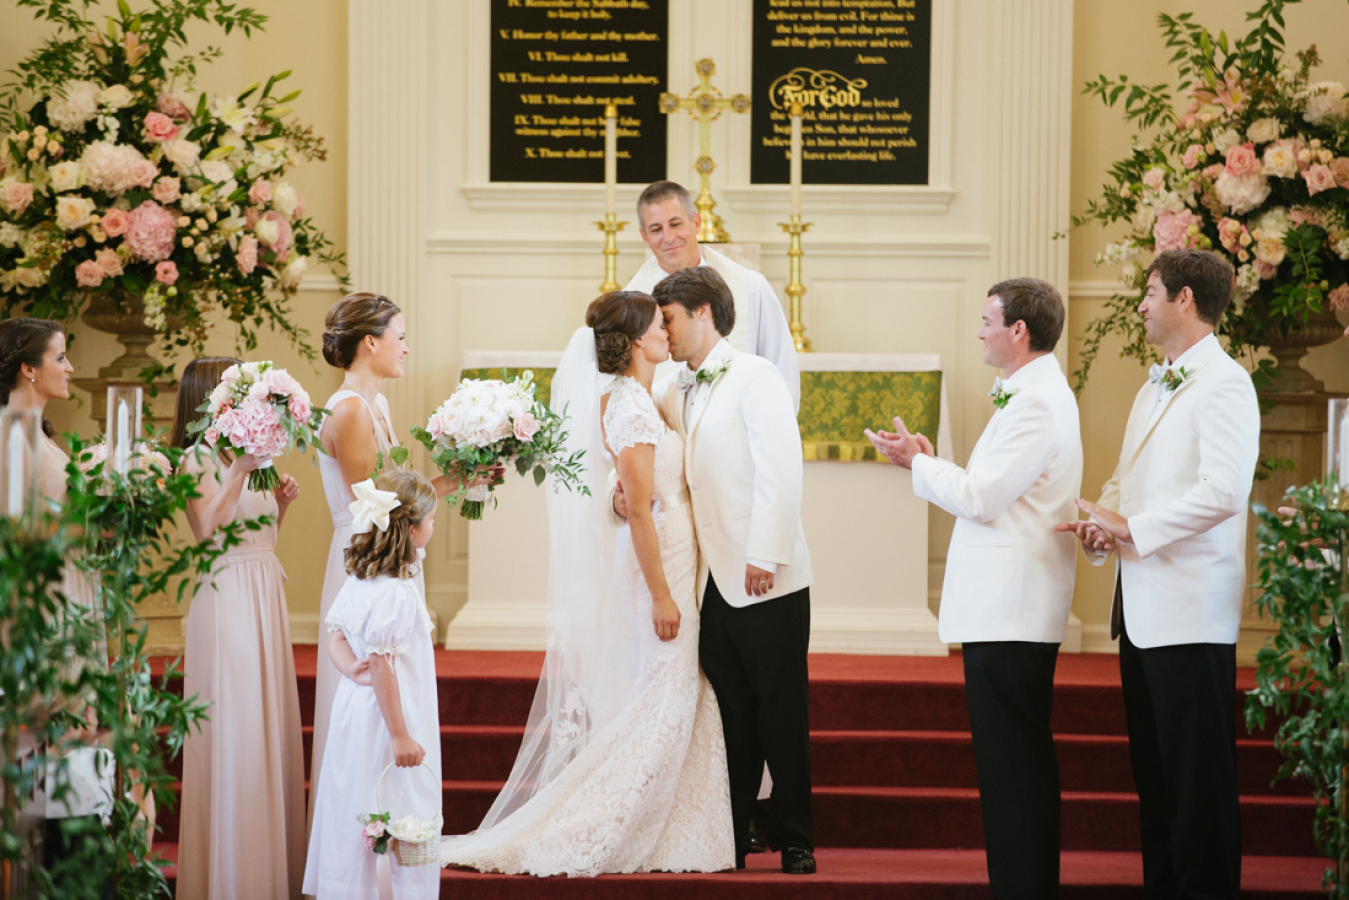 white-grooms-jackets-black-pants http://itgirlweddings.com/southern-white-tie-wedding/